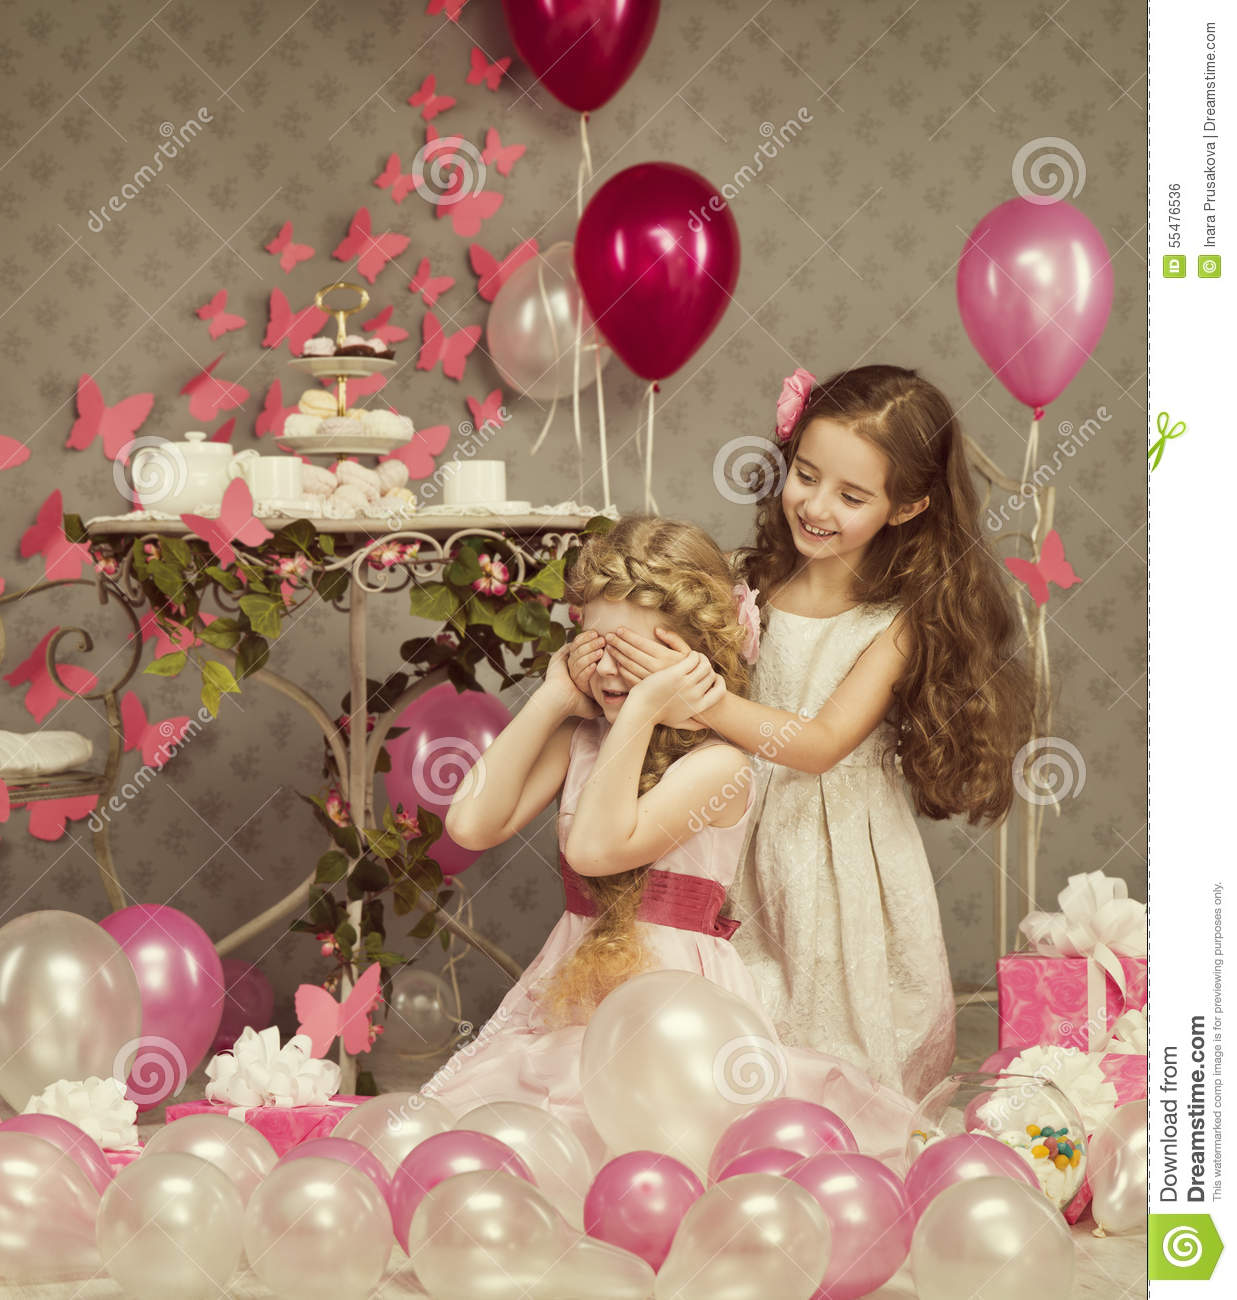 Kids Little Girls Covering Eyes, Children Birthday, Presents Balloons